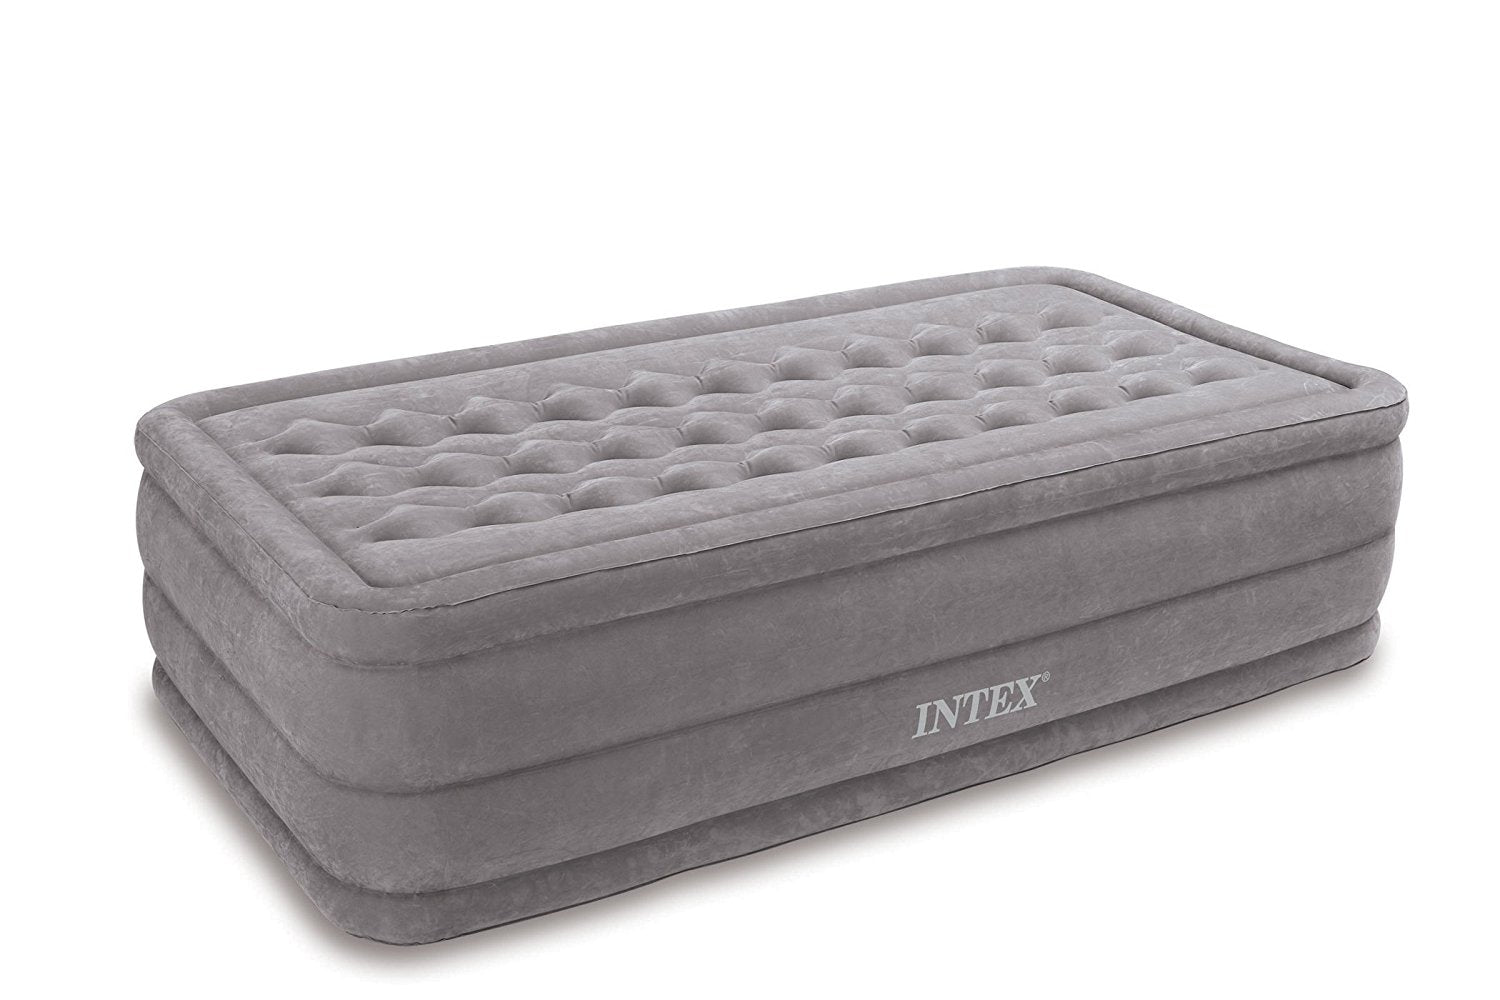 Intex Ultra Plush Airbed with Built-in Electric Pump, Twin, Bed Height 18""